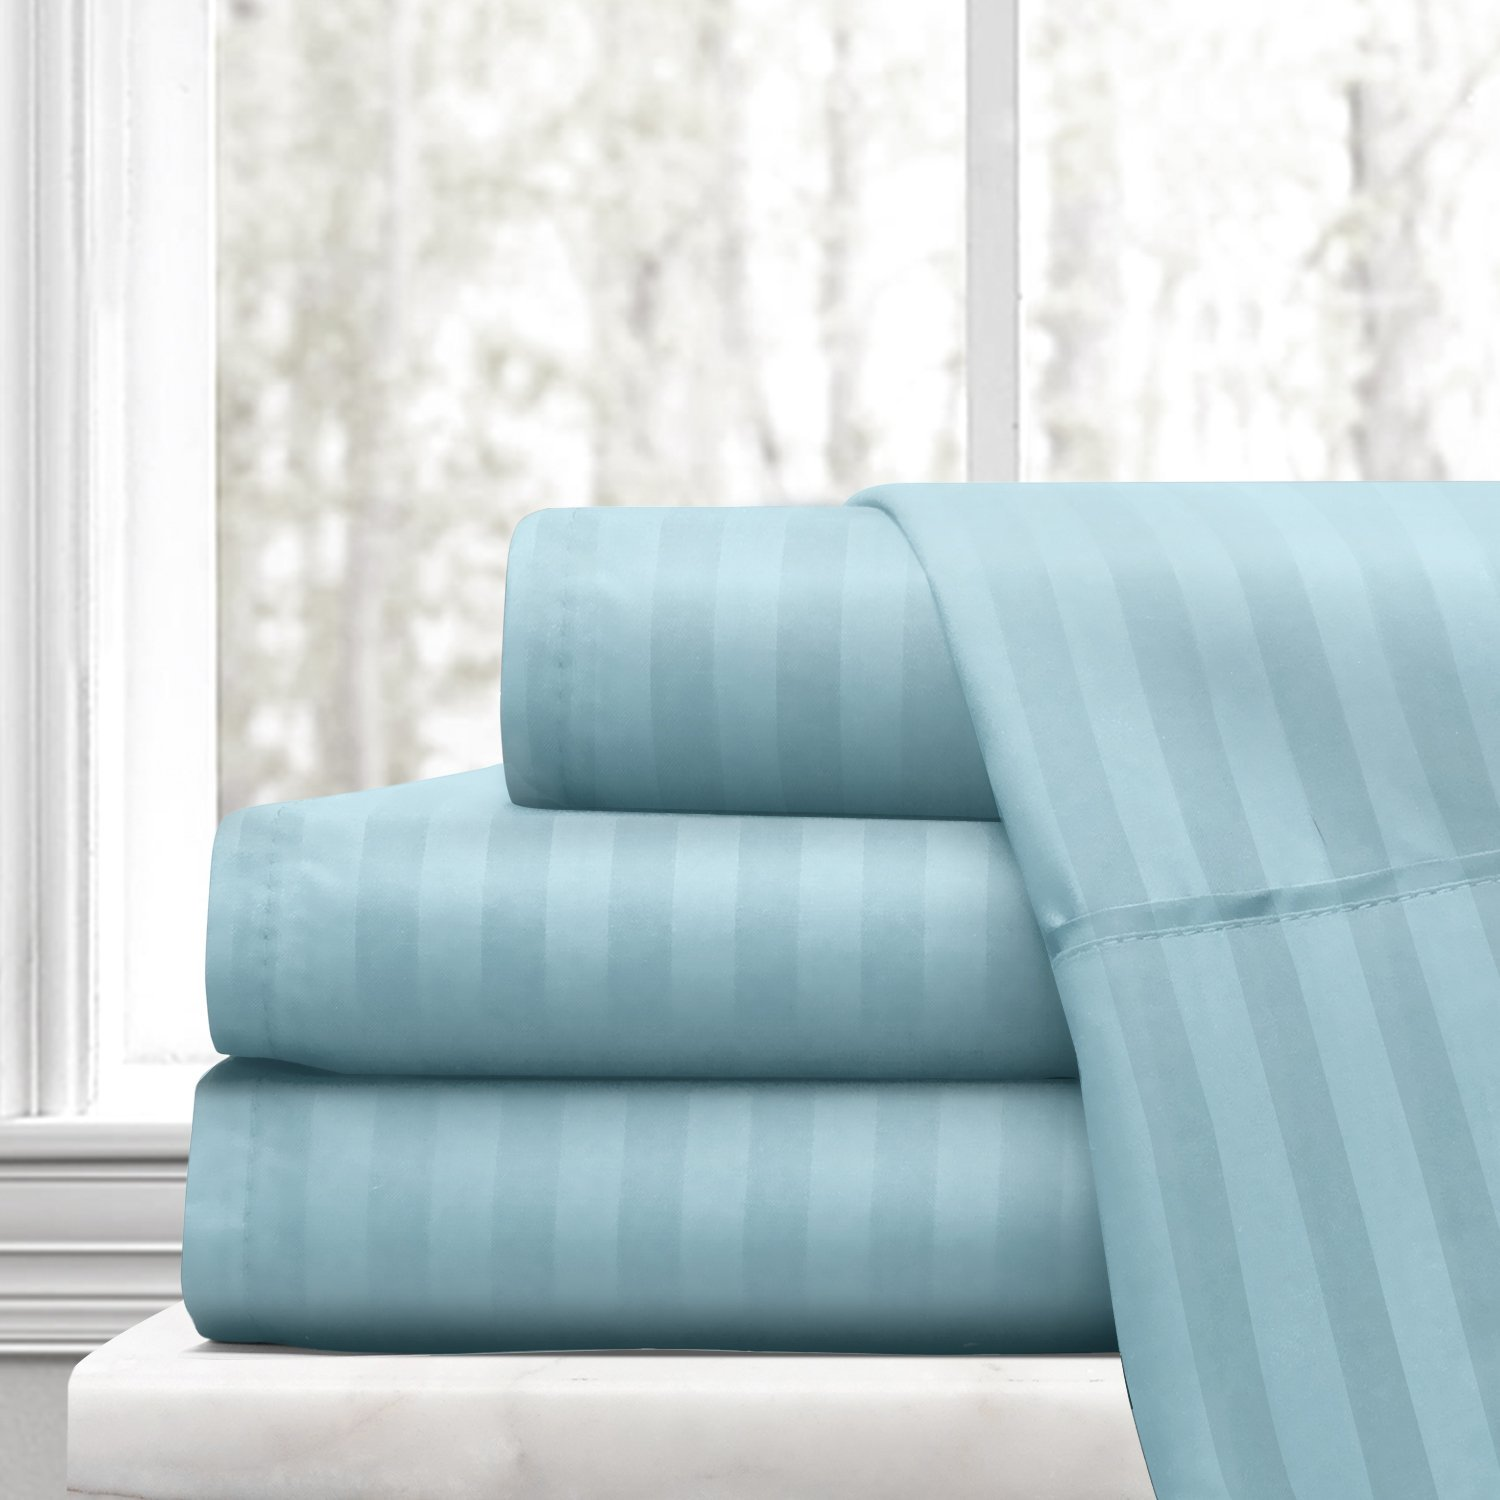 Beckham Hotel Collection Luxury Soft Brushed Microfiber 4-Piece Striped Sheet Set - Hypoallergenic & Stain Resistant with Embossed Stripes -King - Aqua